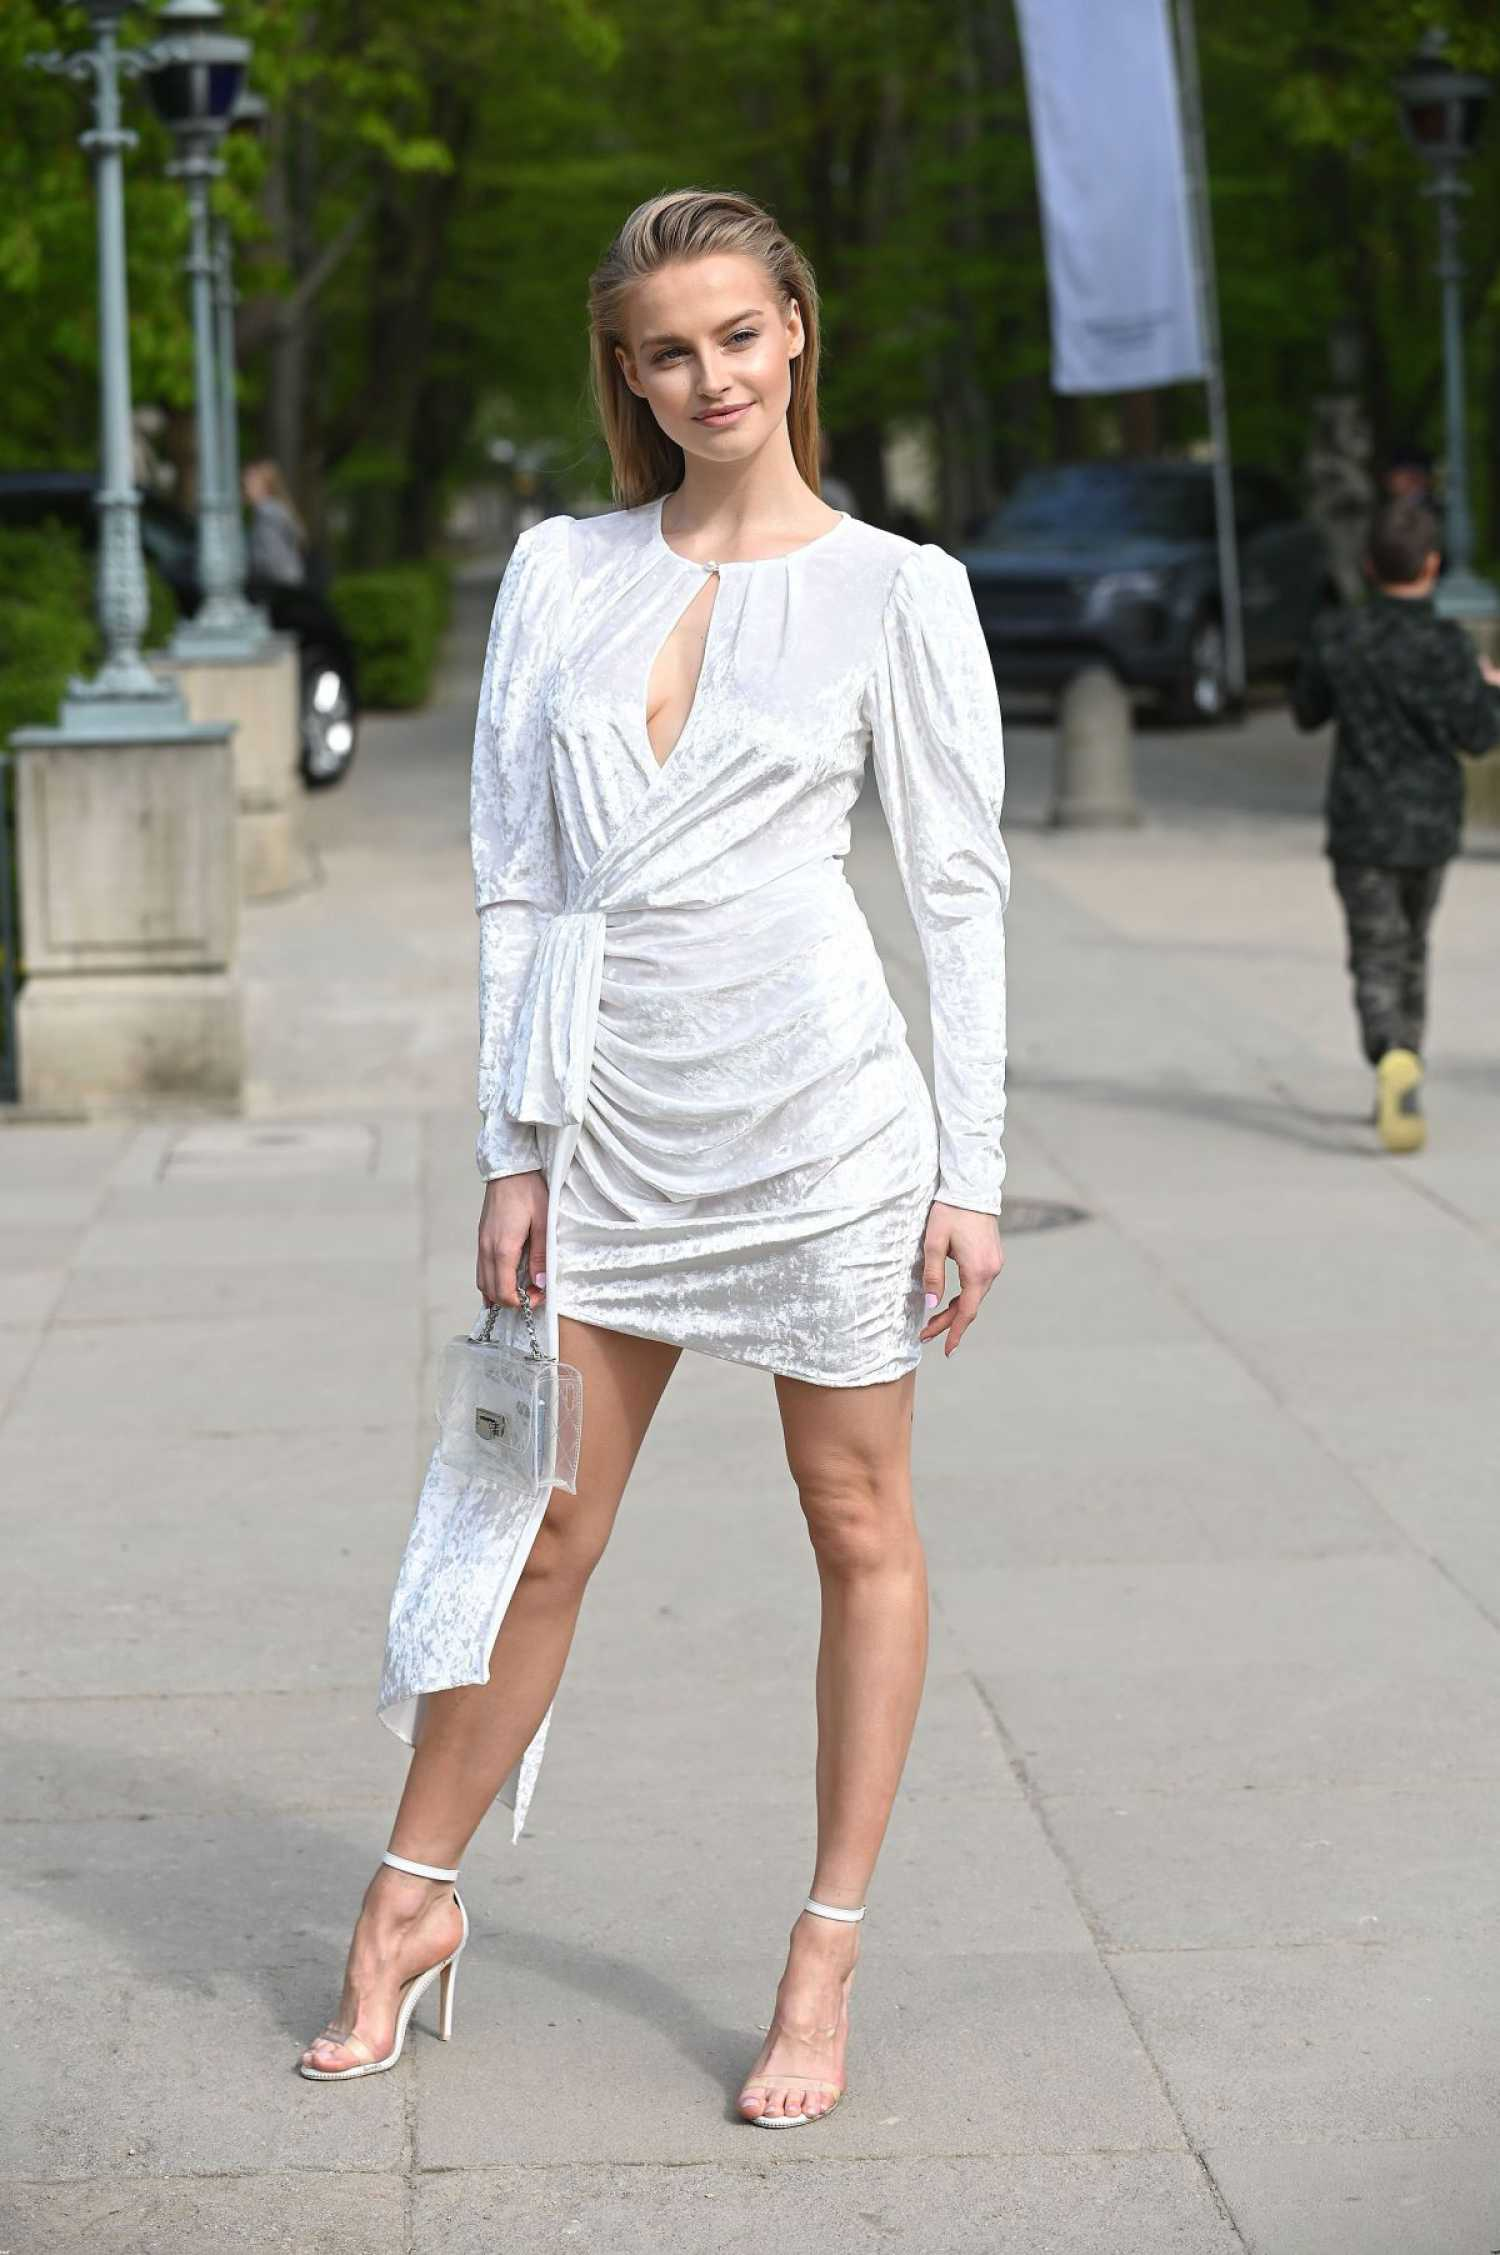 Karolina Pisarek Attends the Maciej Zien Fashion Show in Warsaw – Celeb Donut1500 x 2255